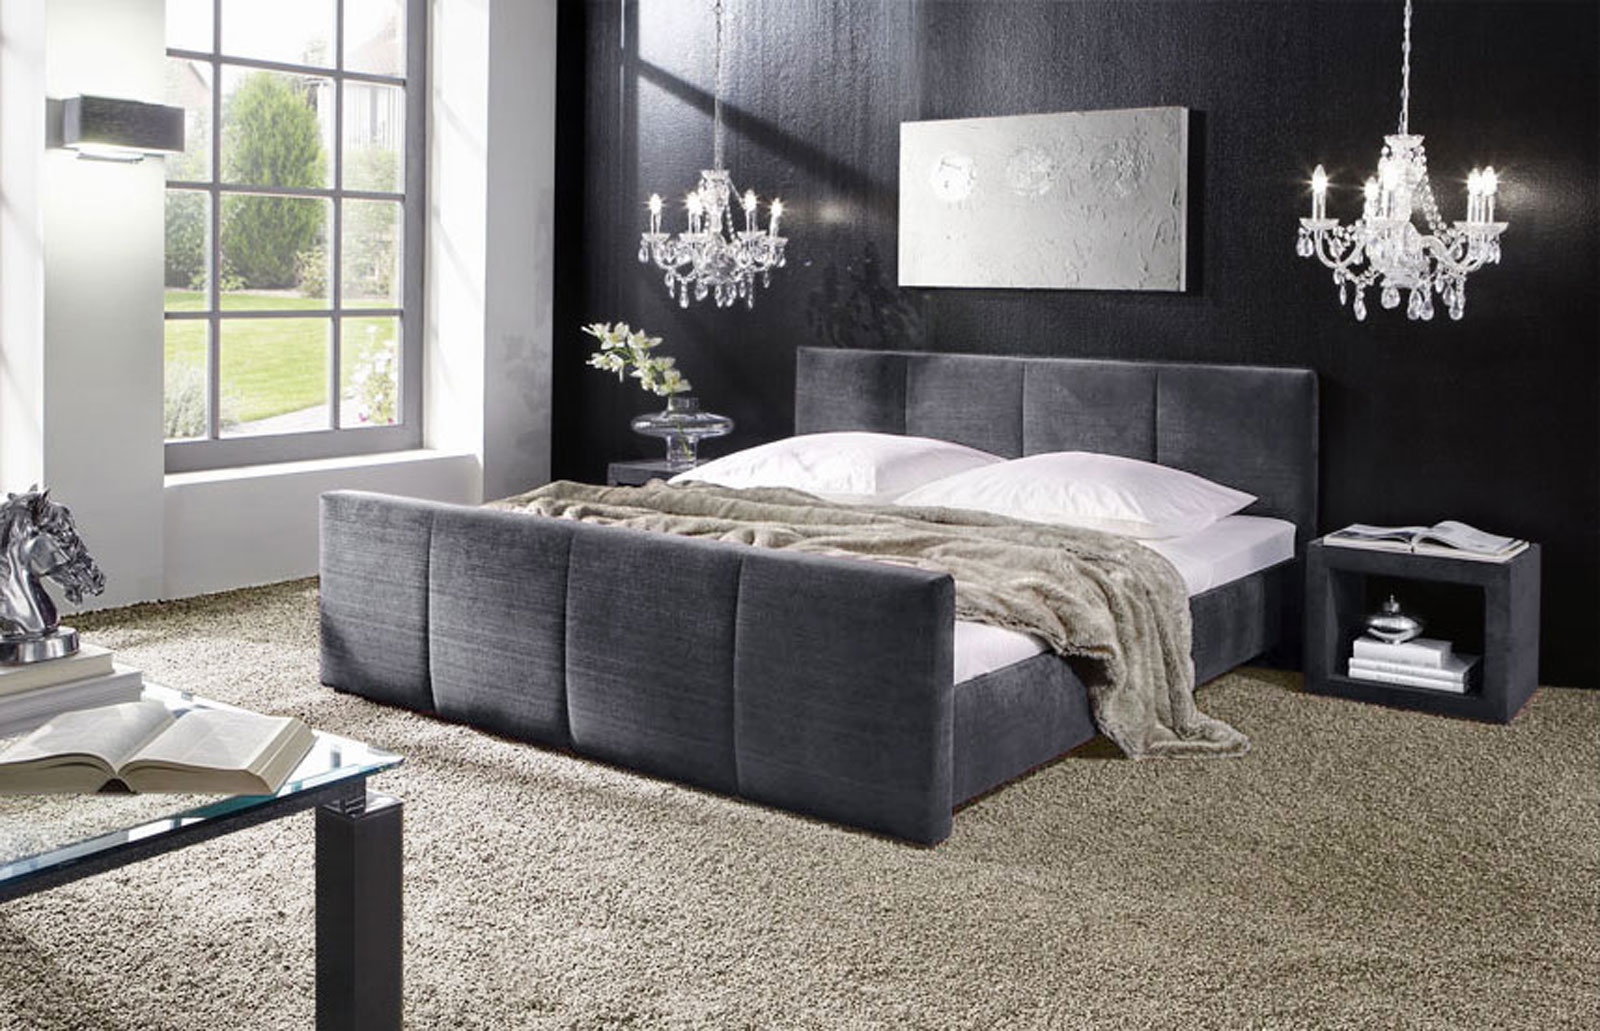 lichtschalter modern lichtschalter von modern bis retro. Black Bedroom Furniture Sets. Home Design Ideas